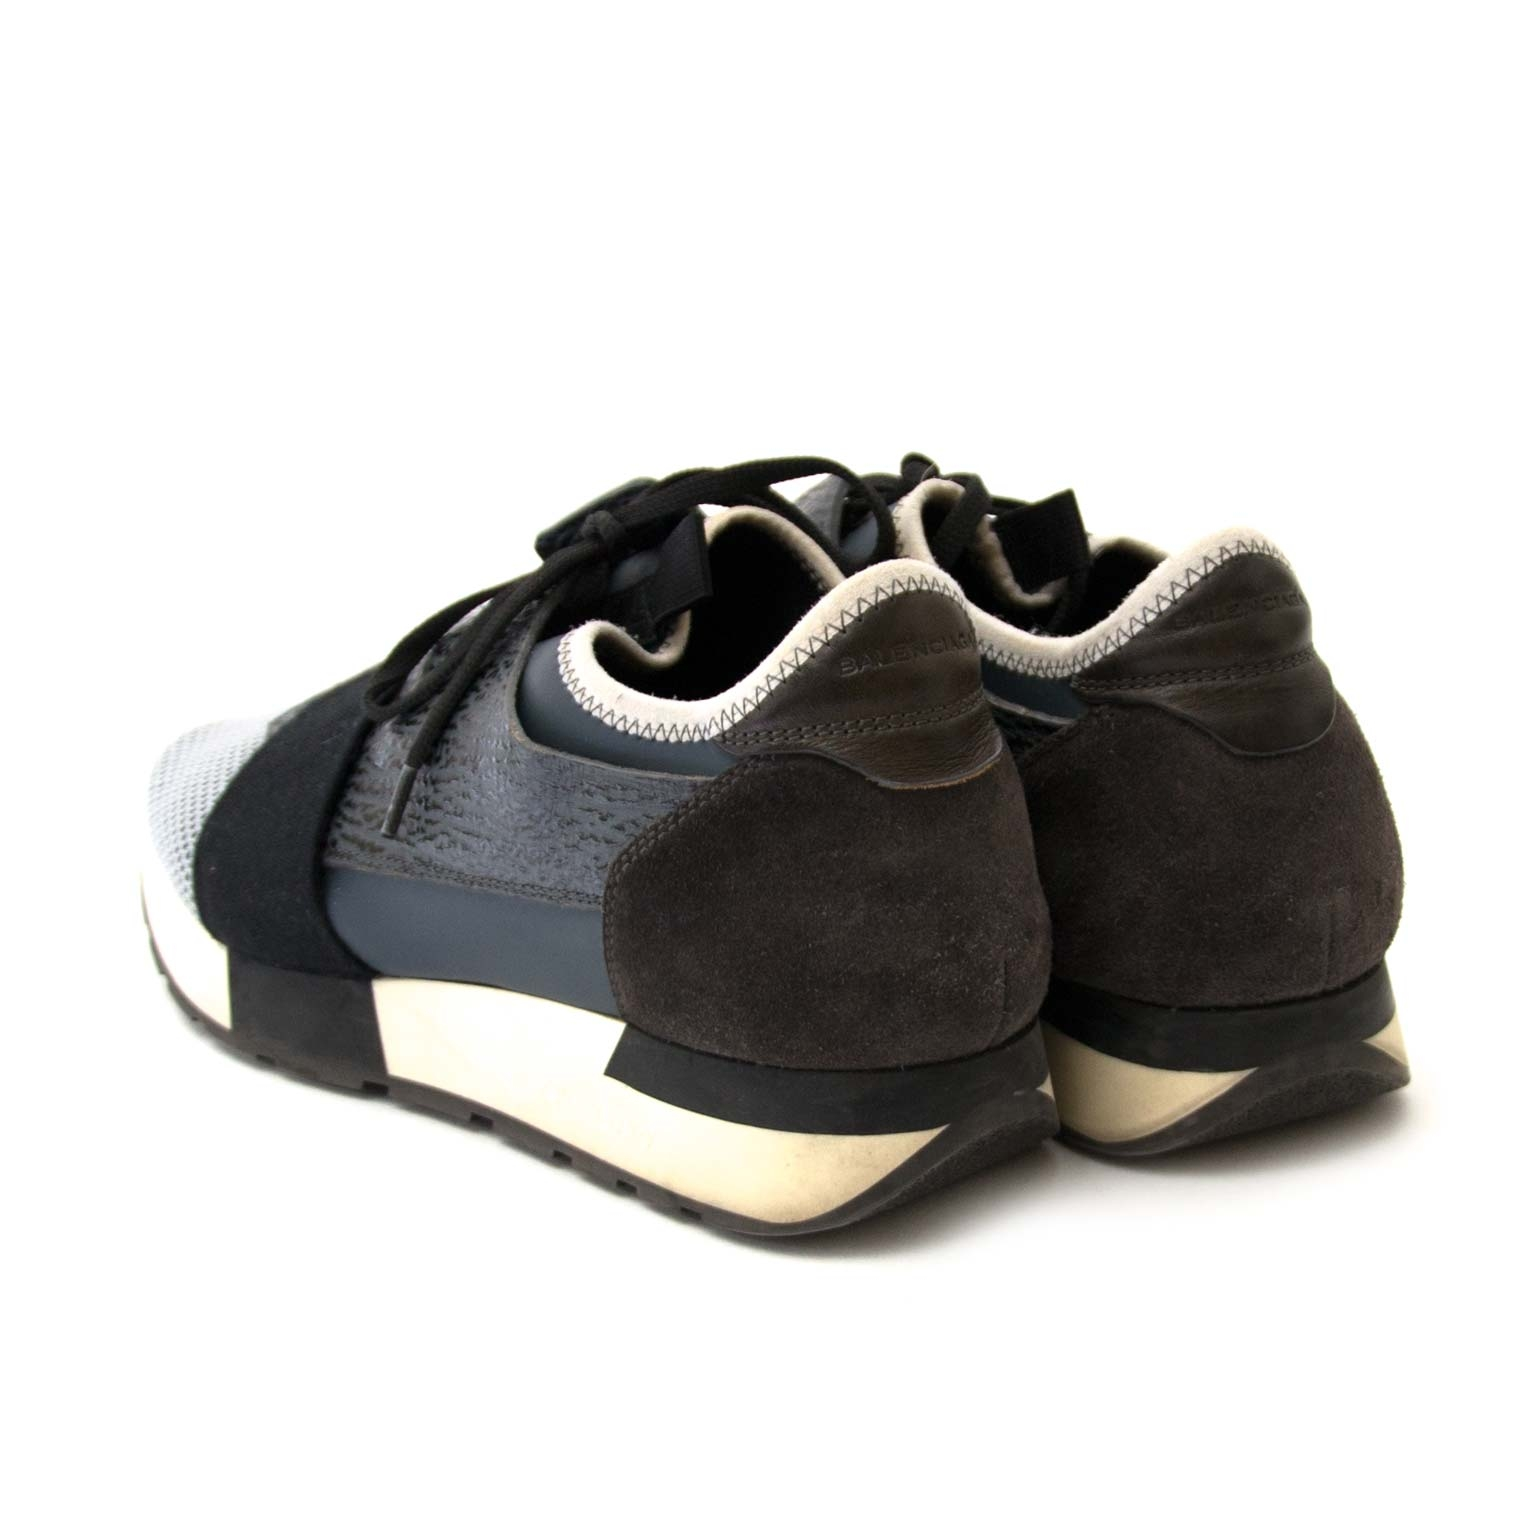 balenciaga race runners grey and black now for sale at labellov vintage fashion webshop belgium